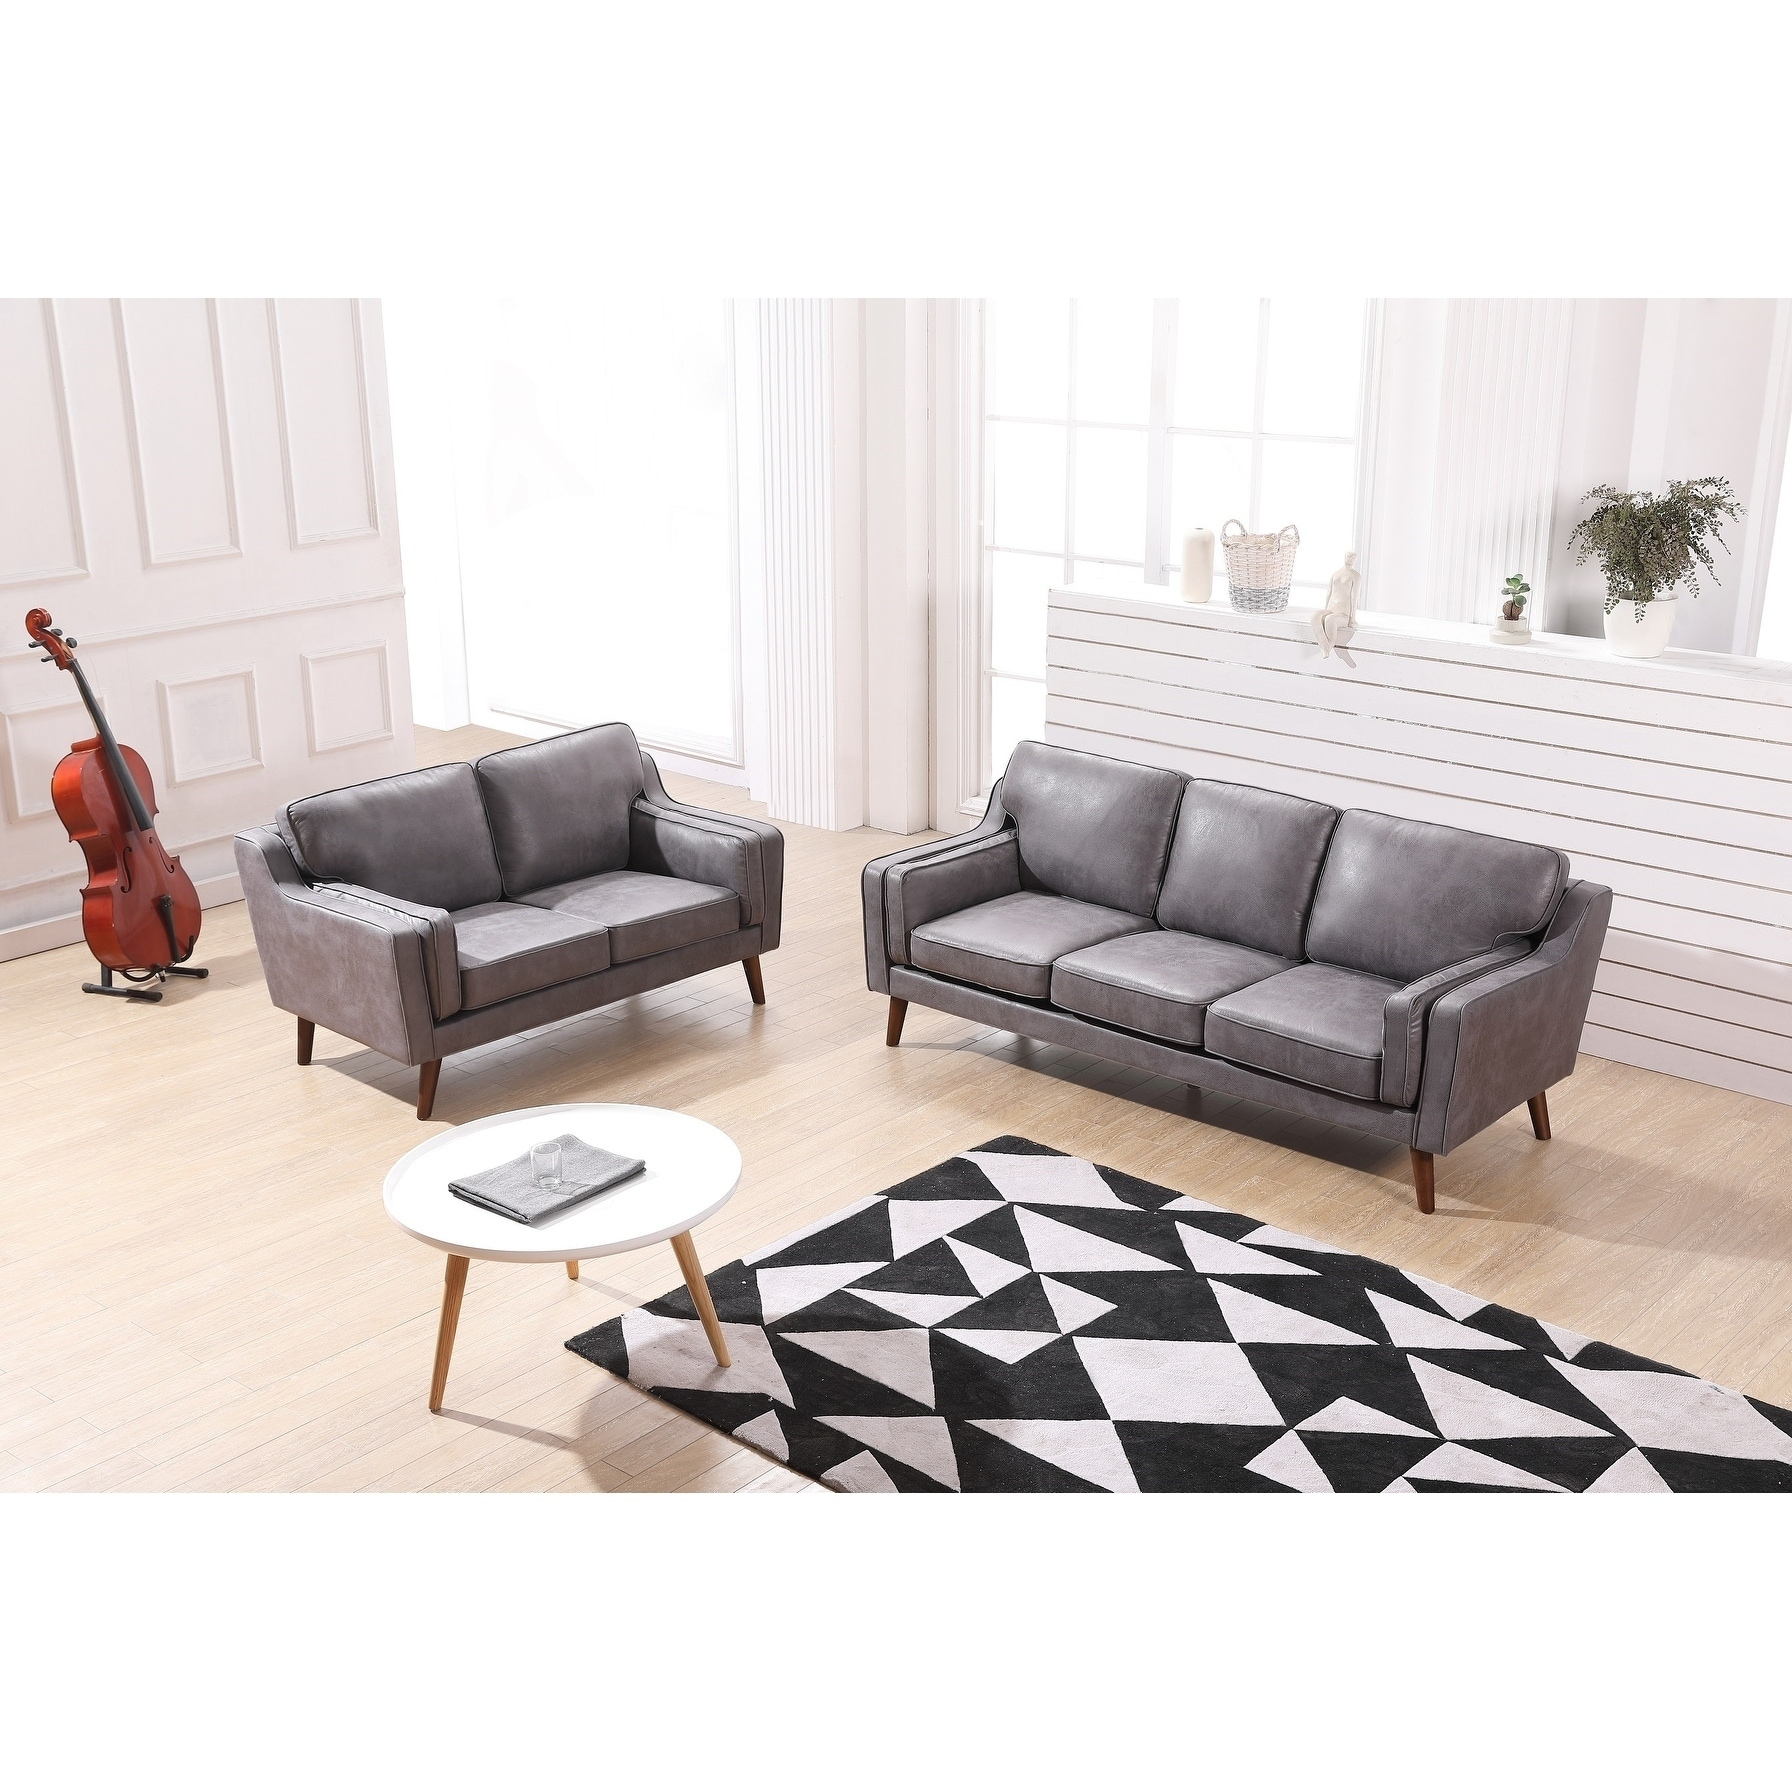 Sofia Mid-Century Air Leather Fabric Sofa Set